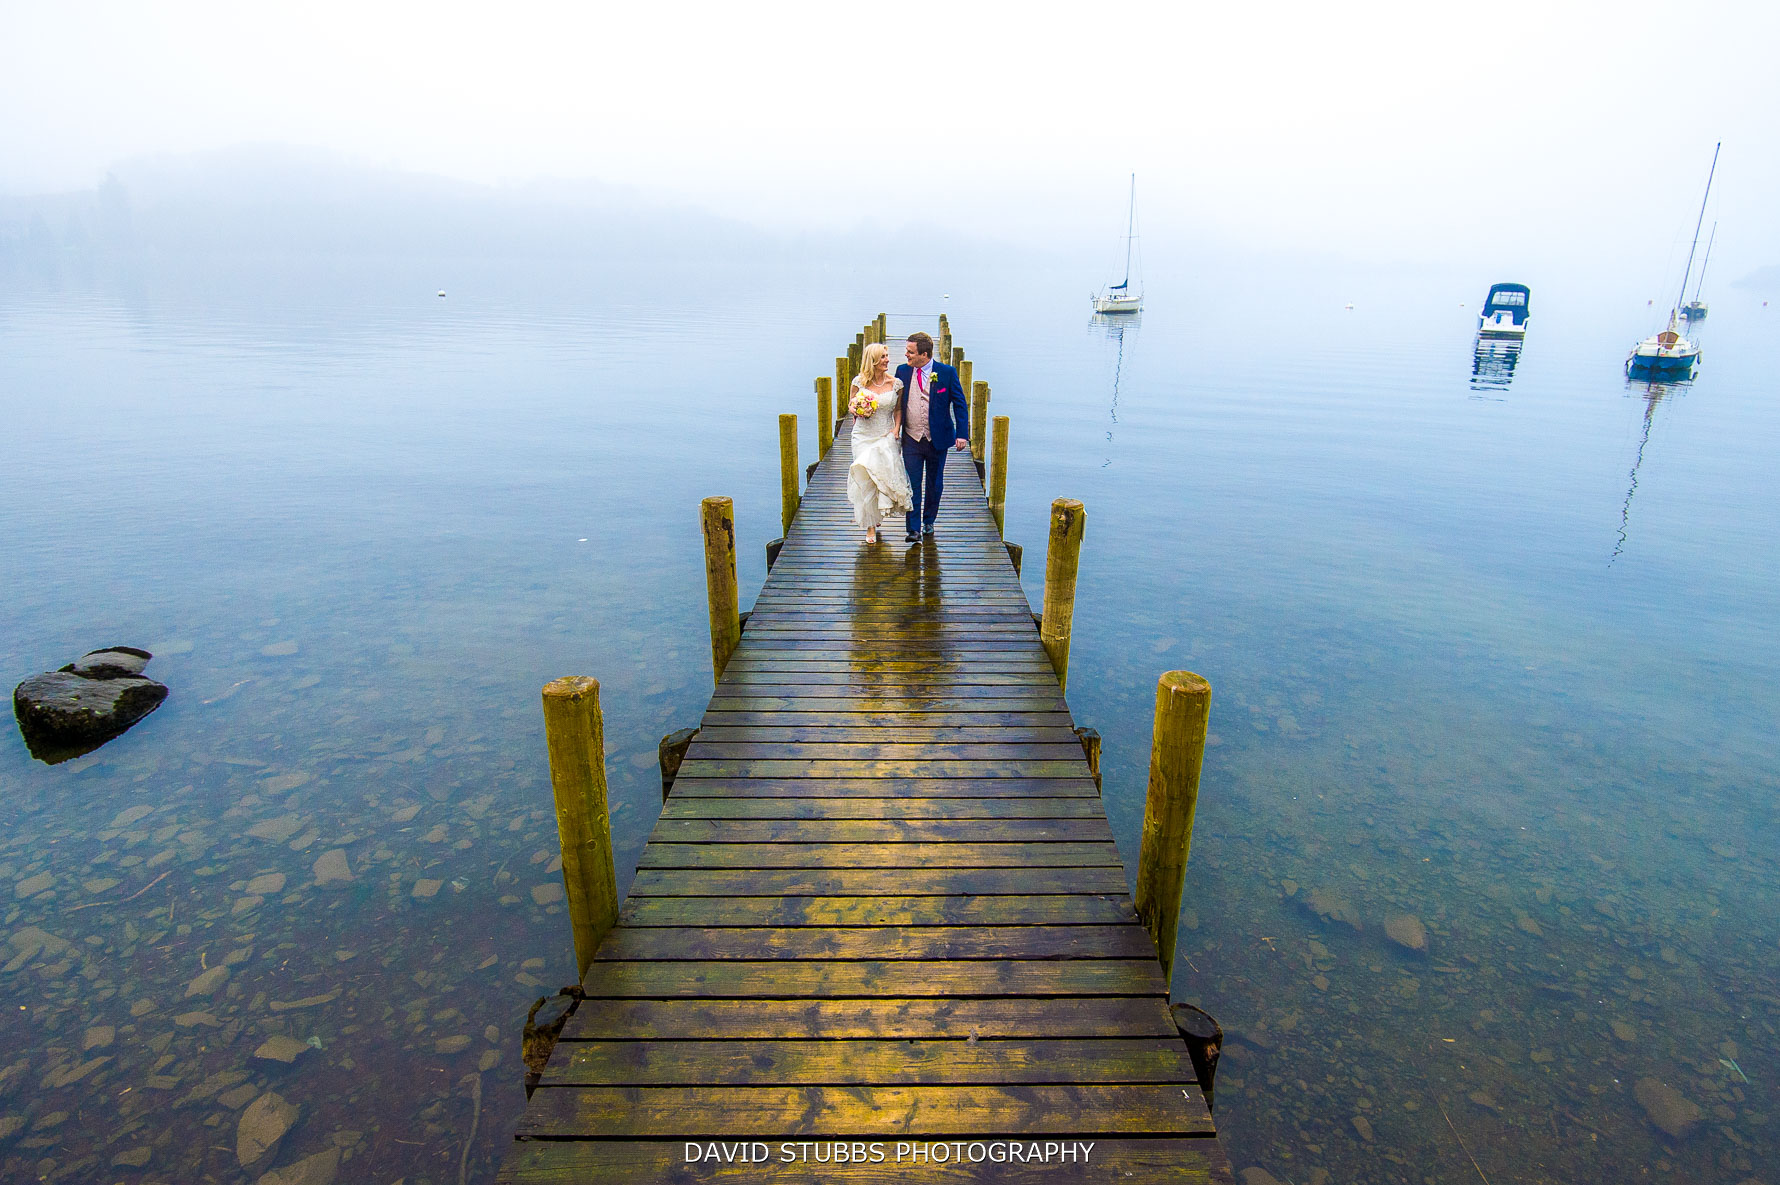 walking along the jetty for photographs